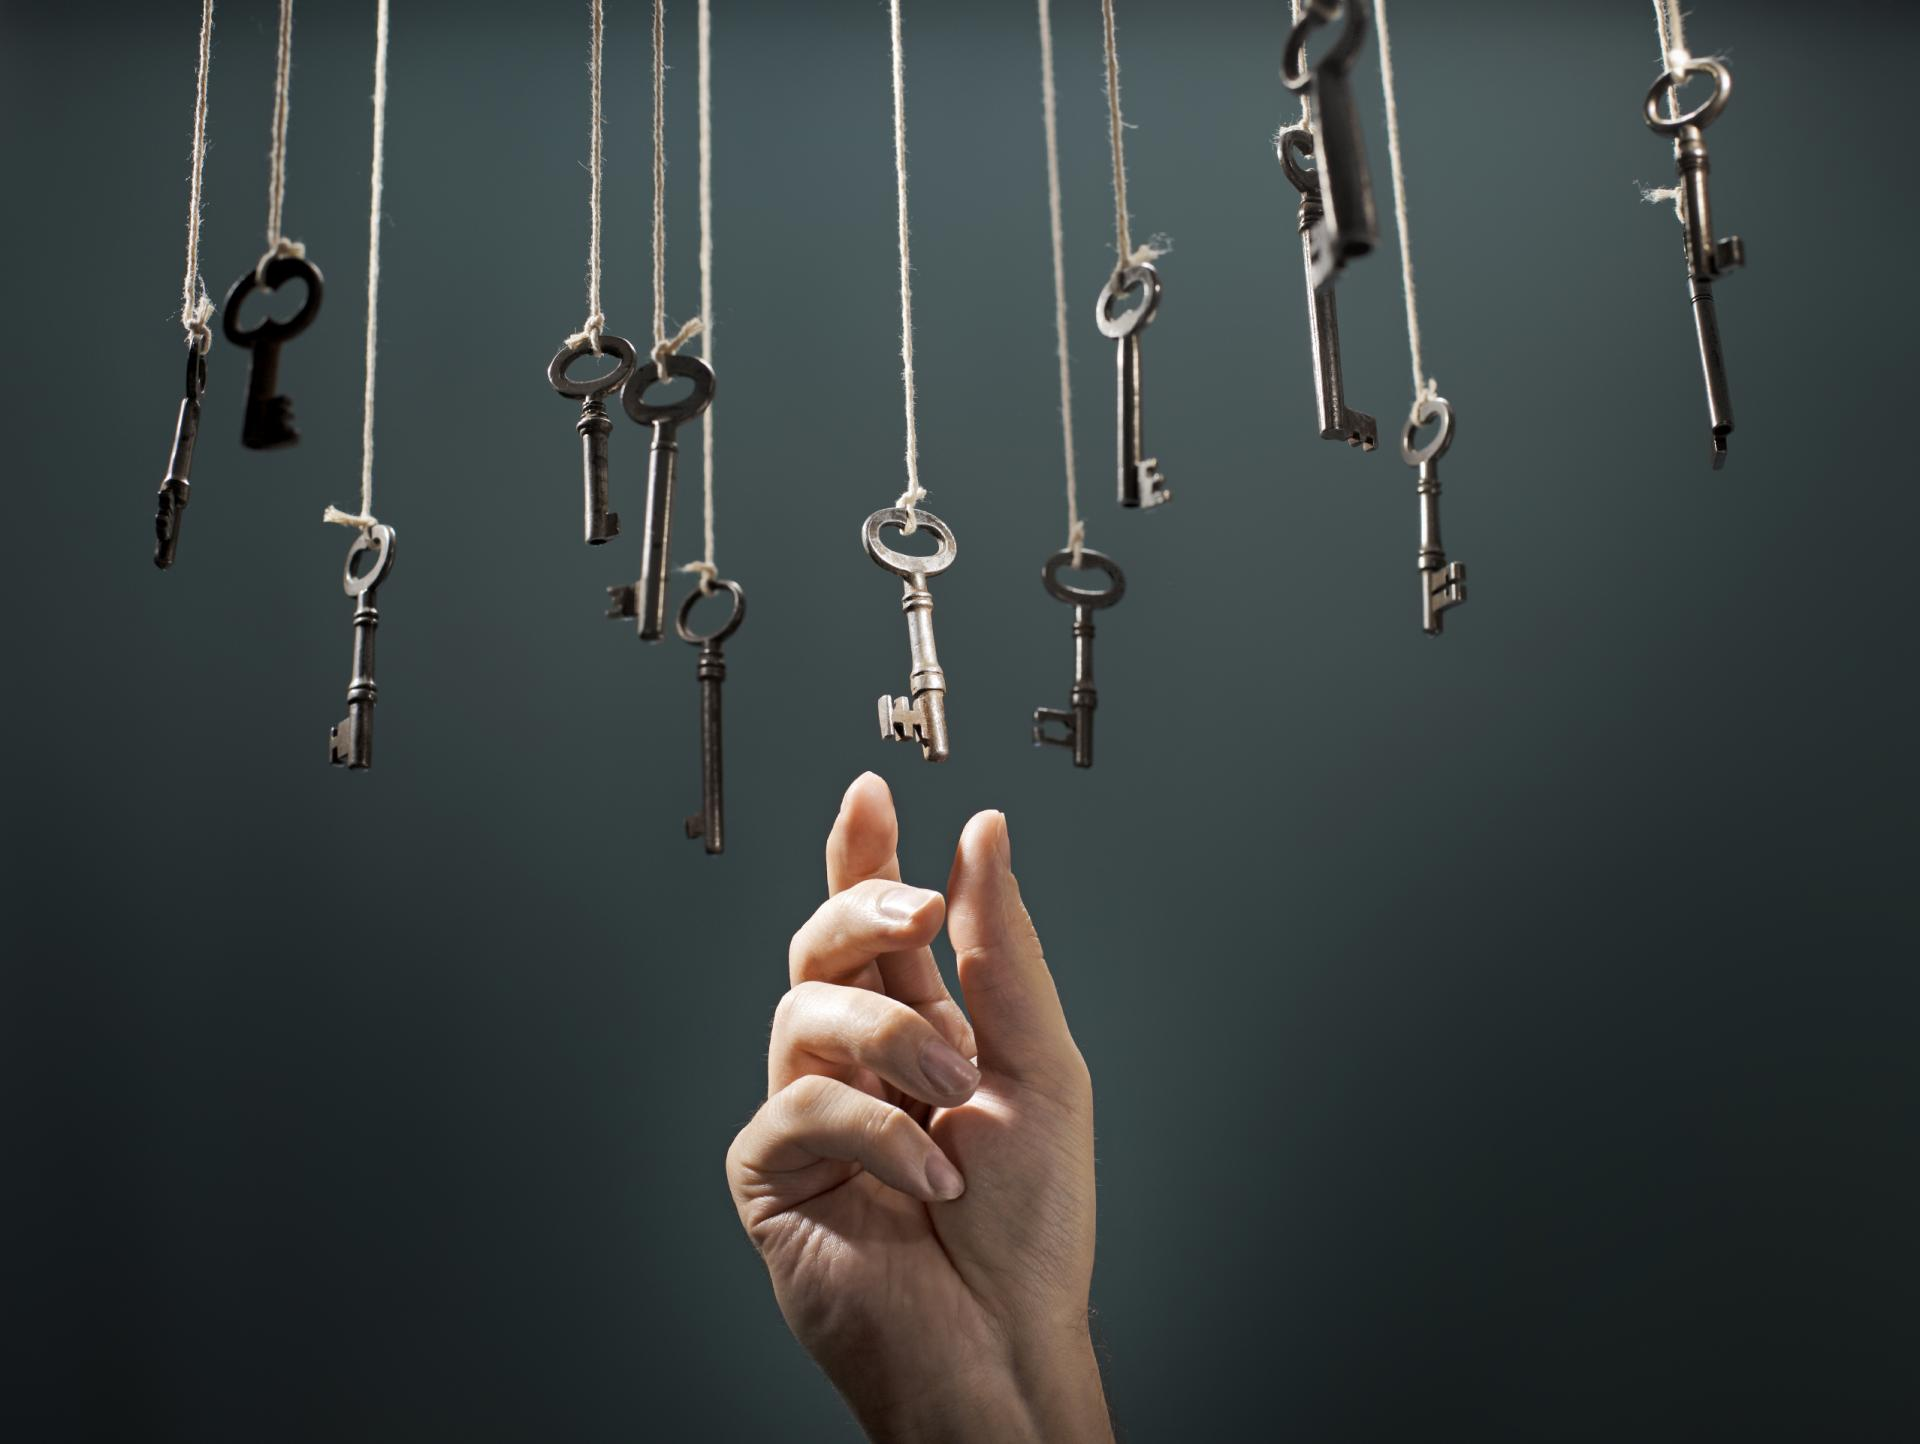 a hand choosing a hanging key listening to gut intuition